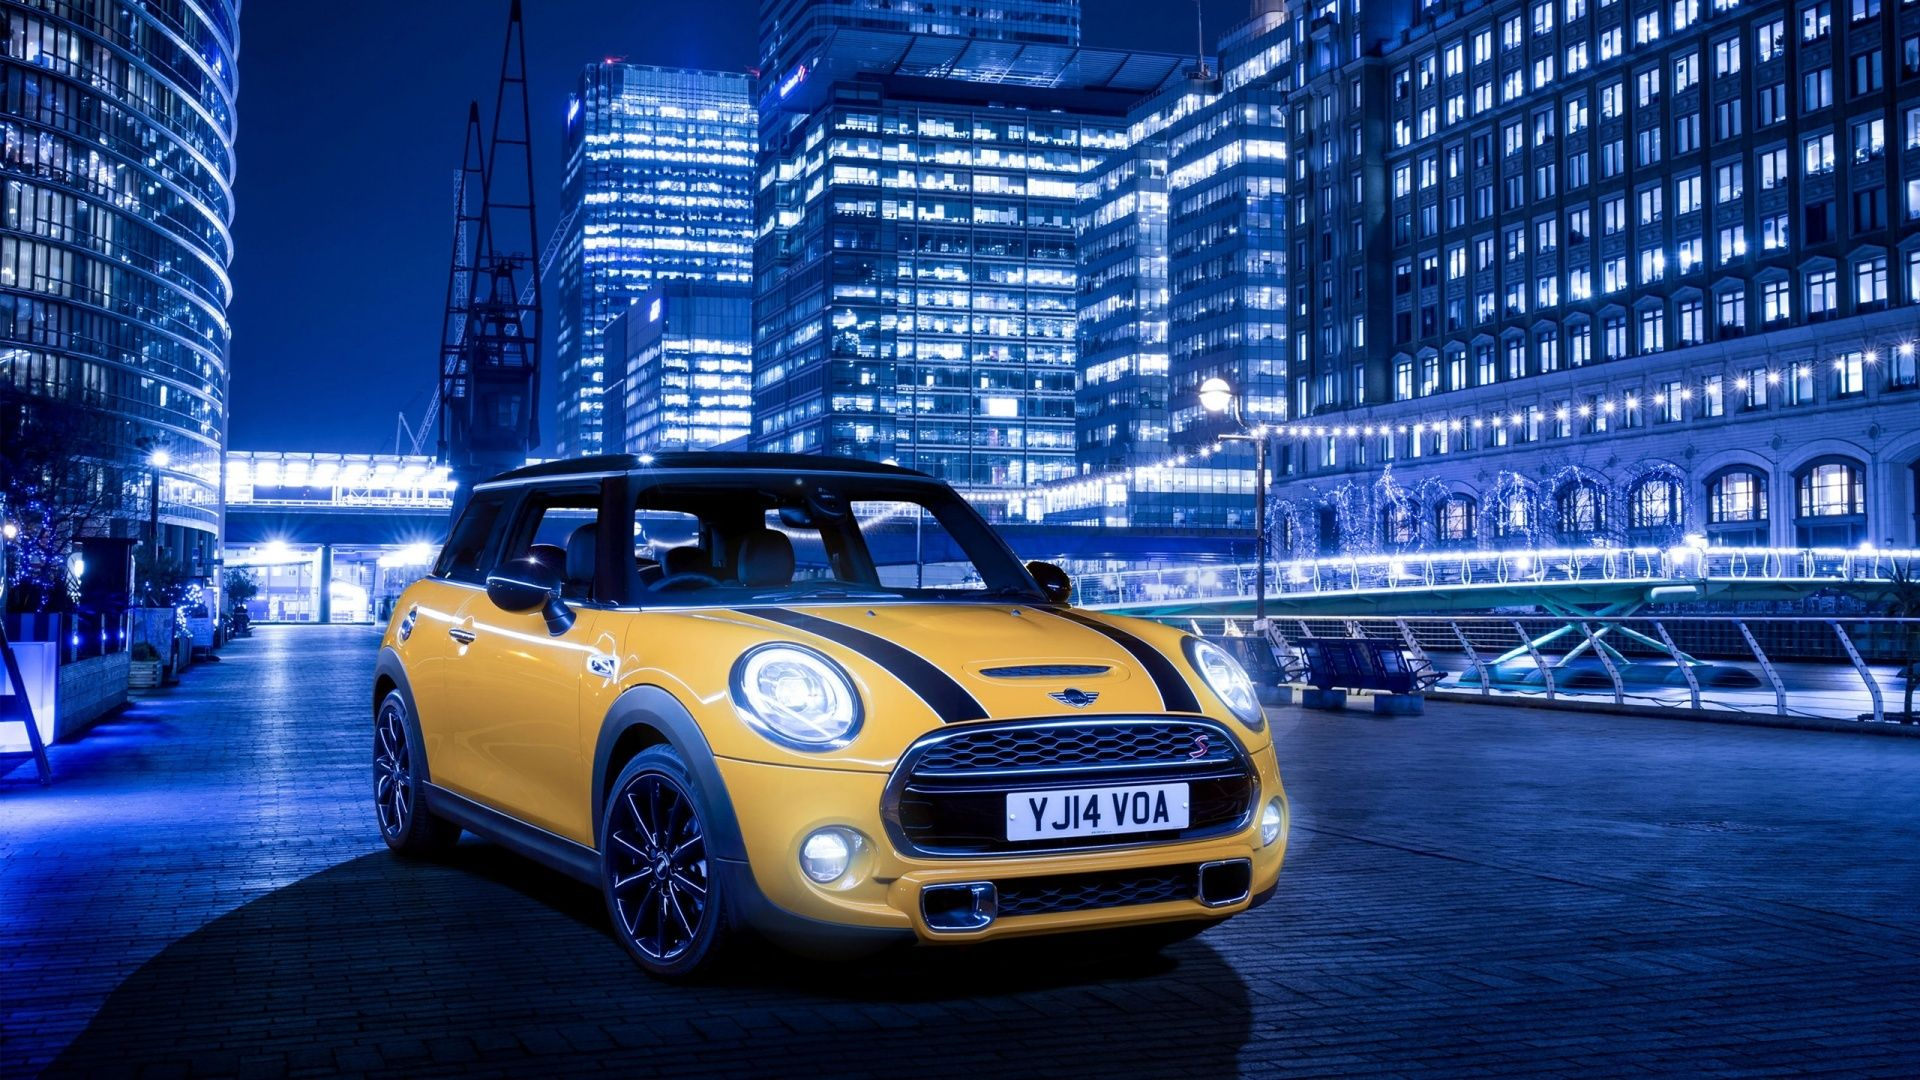 Free Download  Pure Mini Cooper Car Hd Wallpapers Latest Photoshoots Hot Images And More For Pc Laptops Iphone And More Resolution Device At